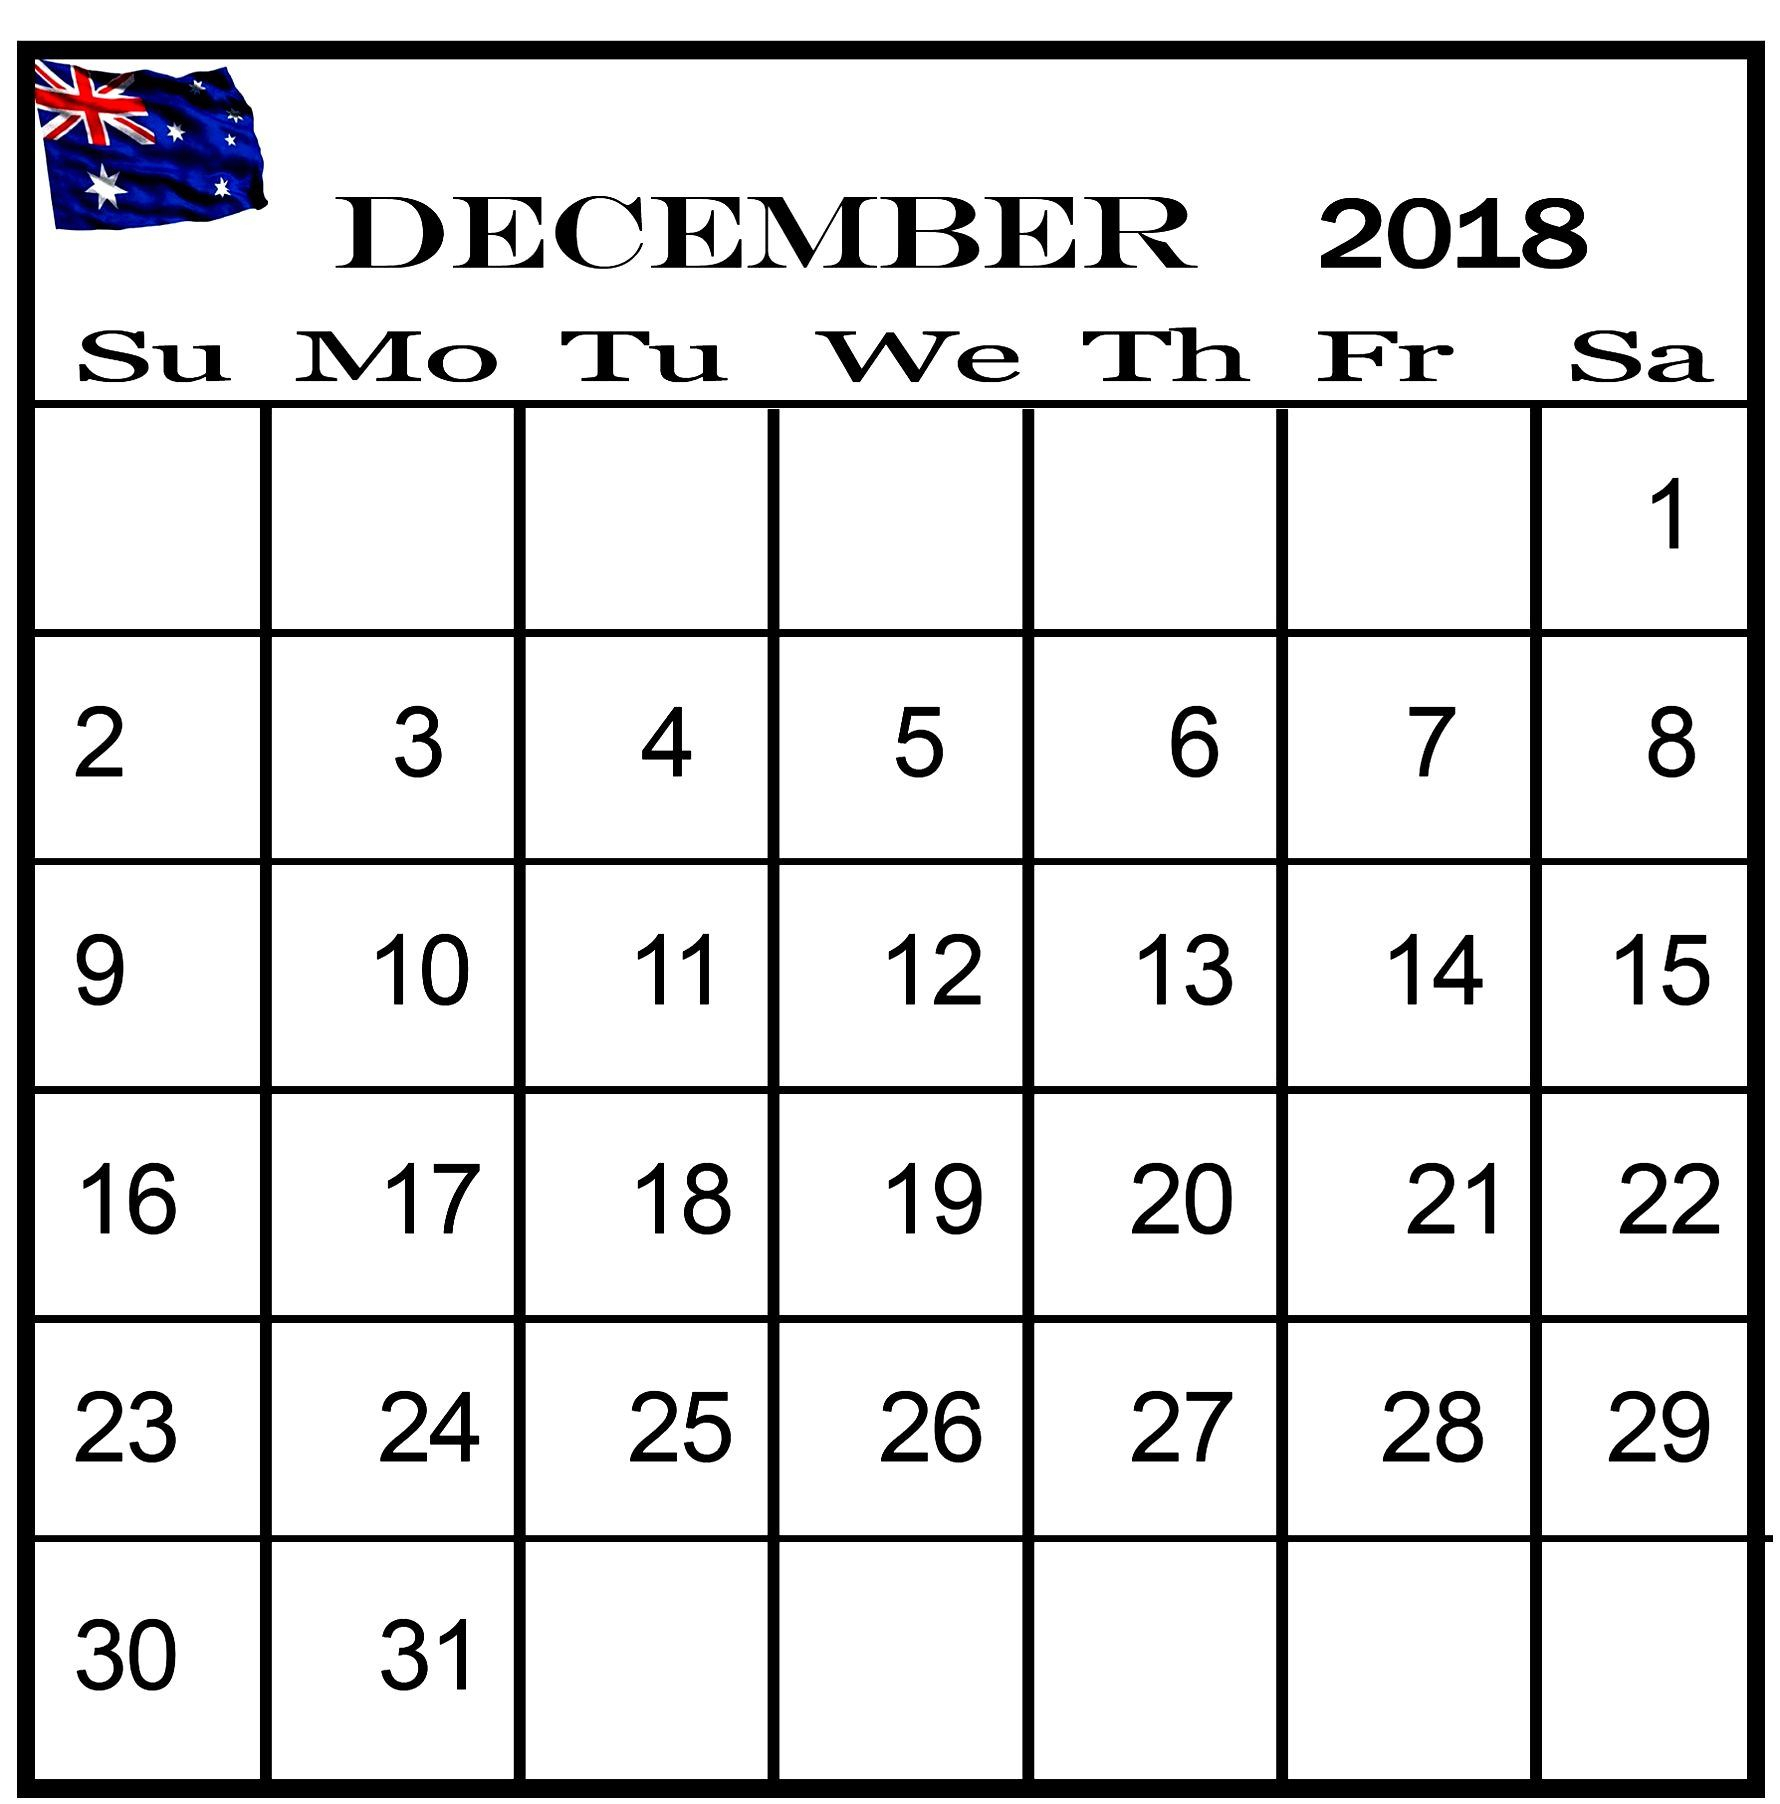 December 2018 Calendar Australia National Holidays | 100+ December in National Day Calendar Blank